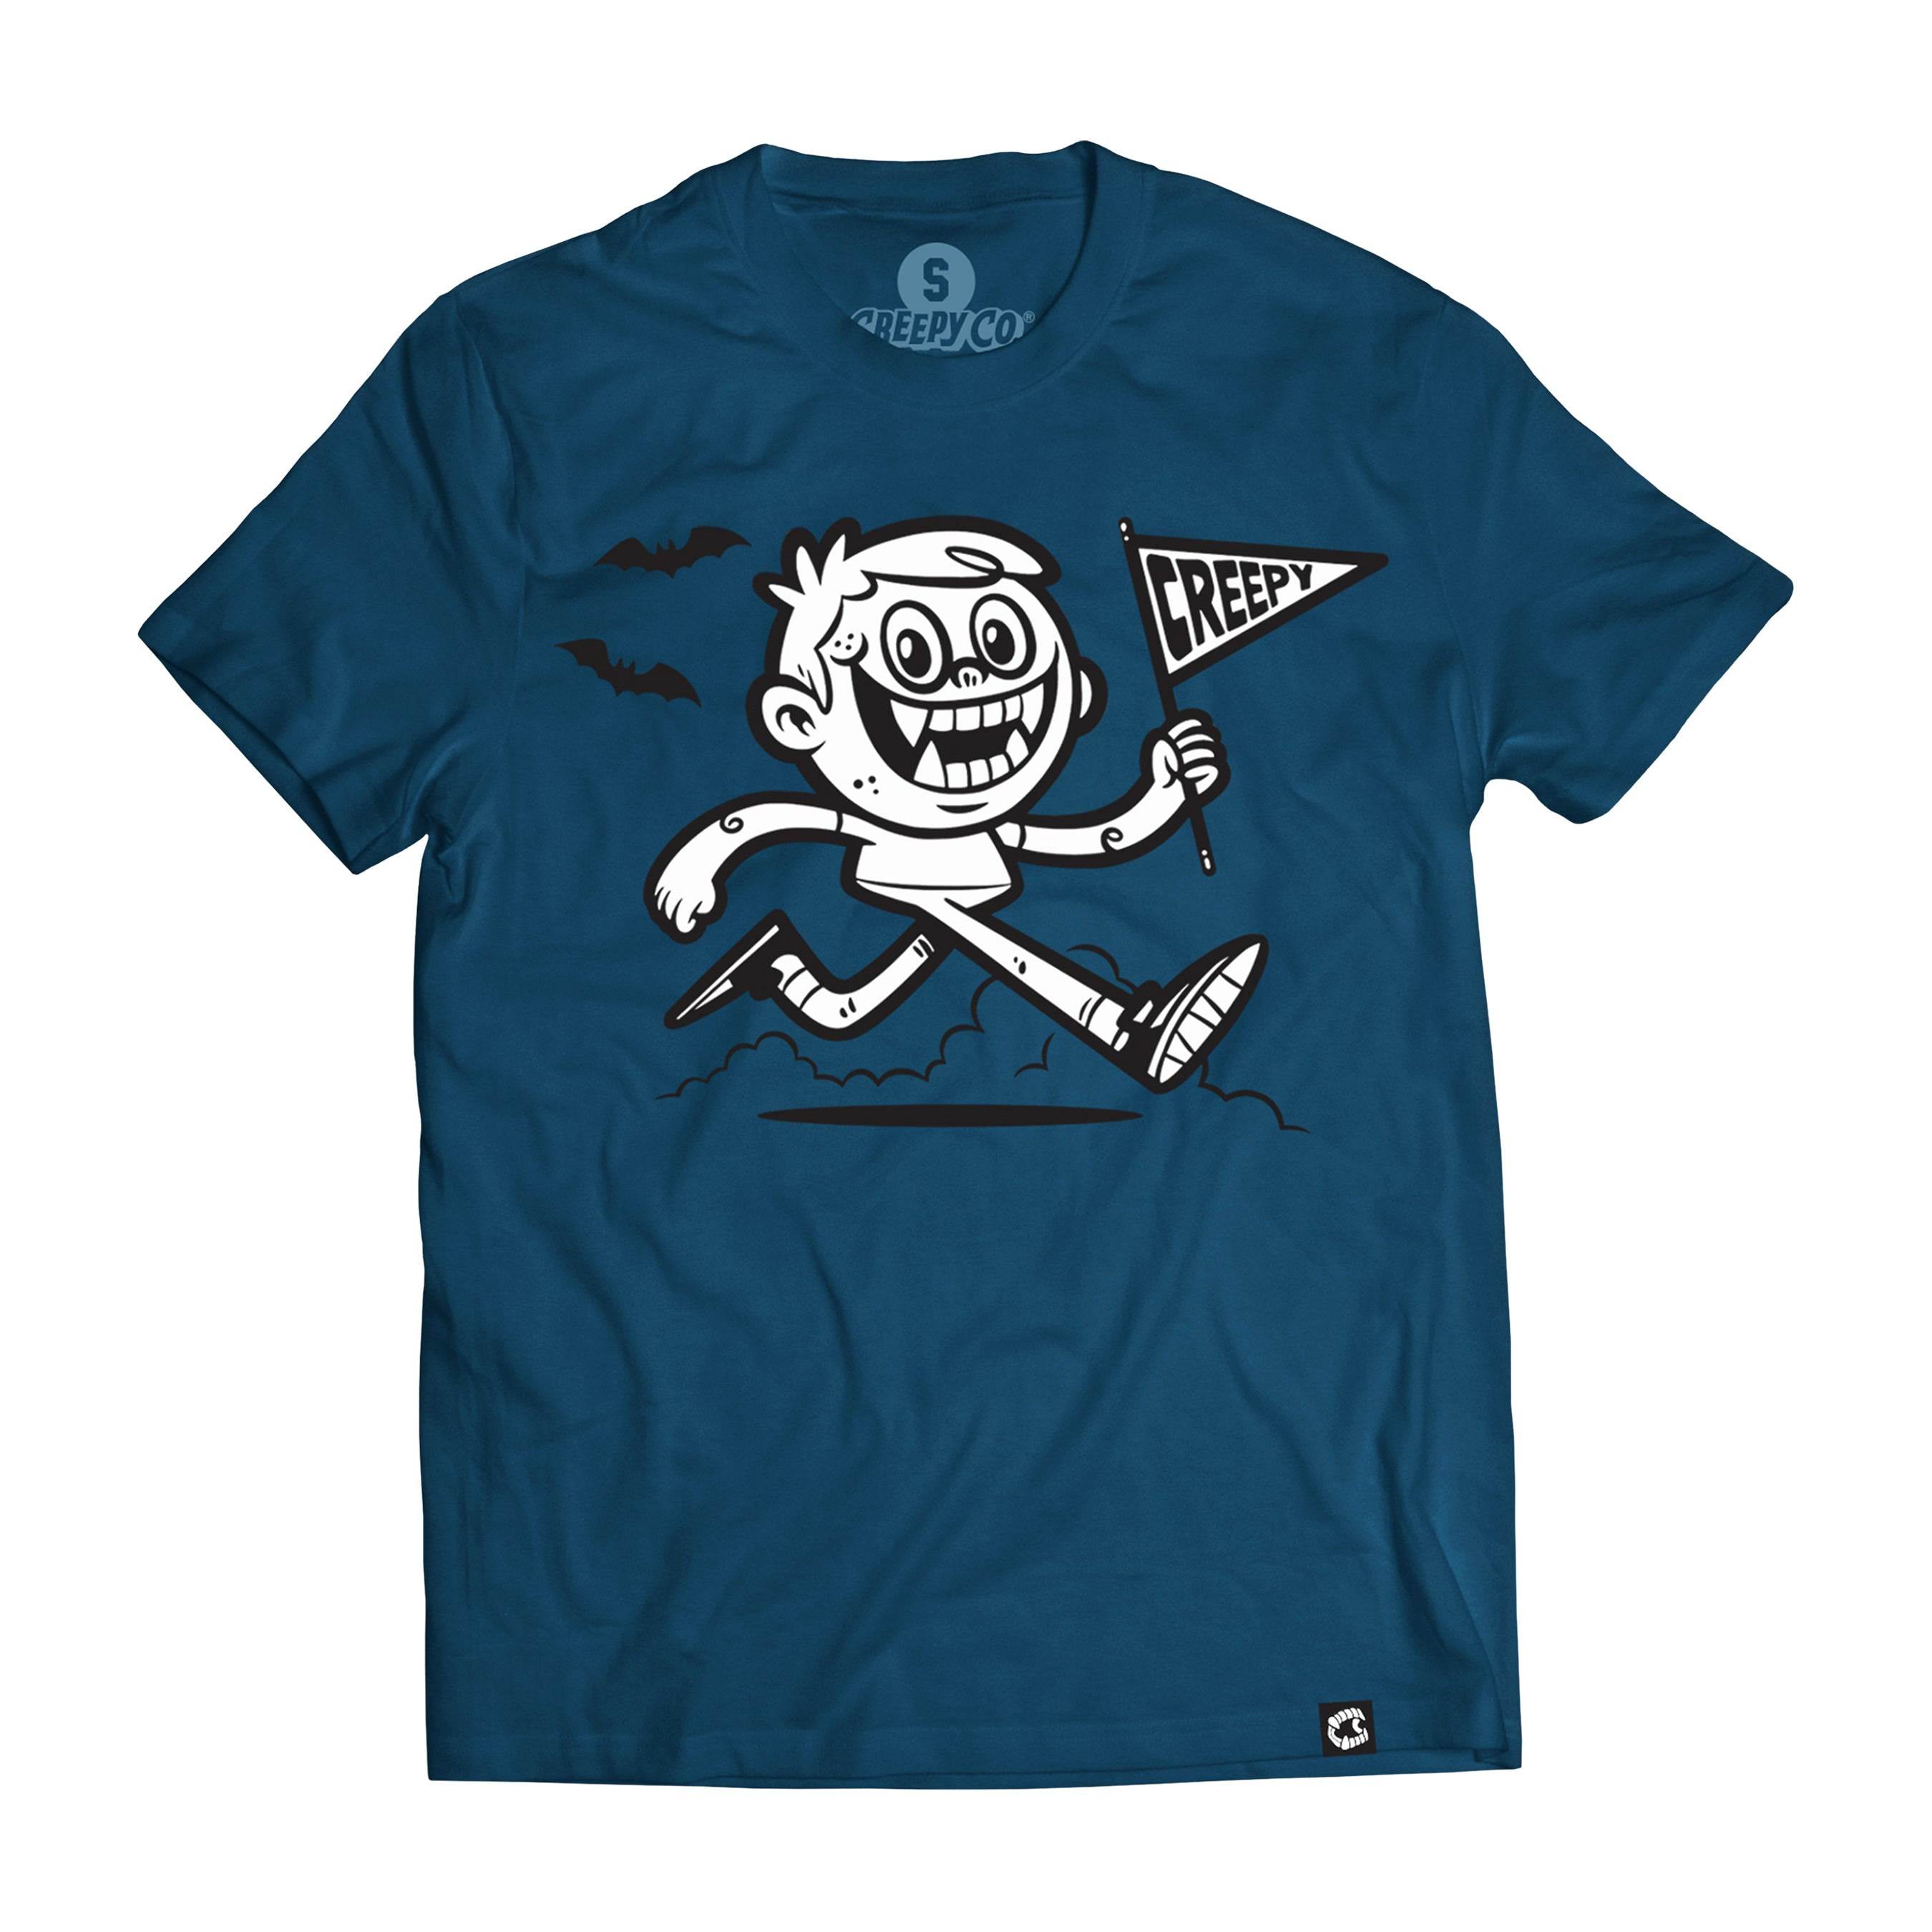 Bosco Bloodworth Pennant Tee